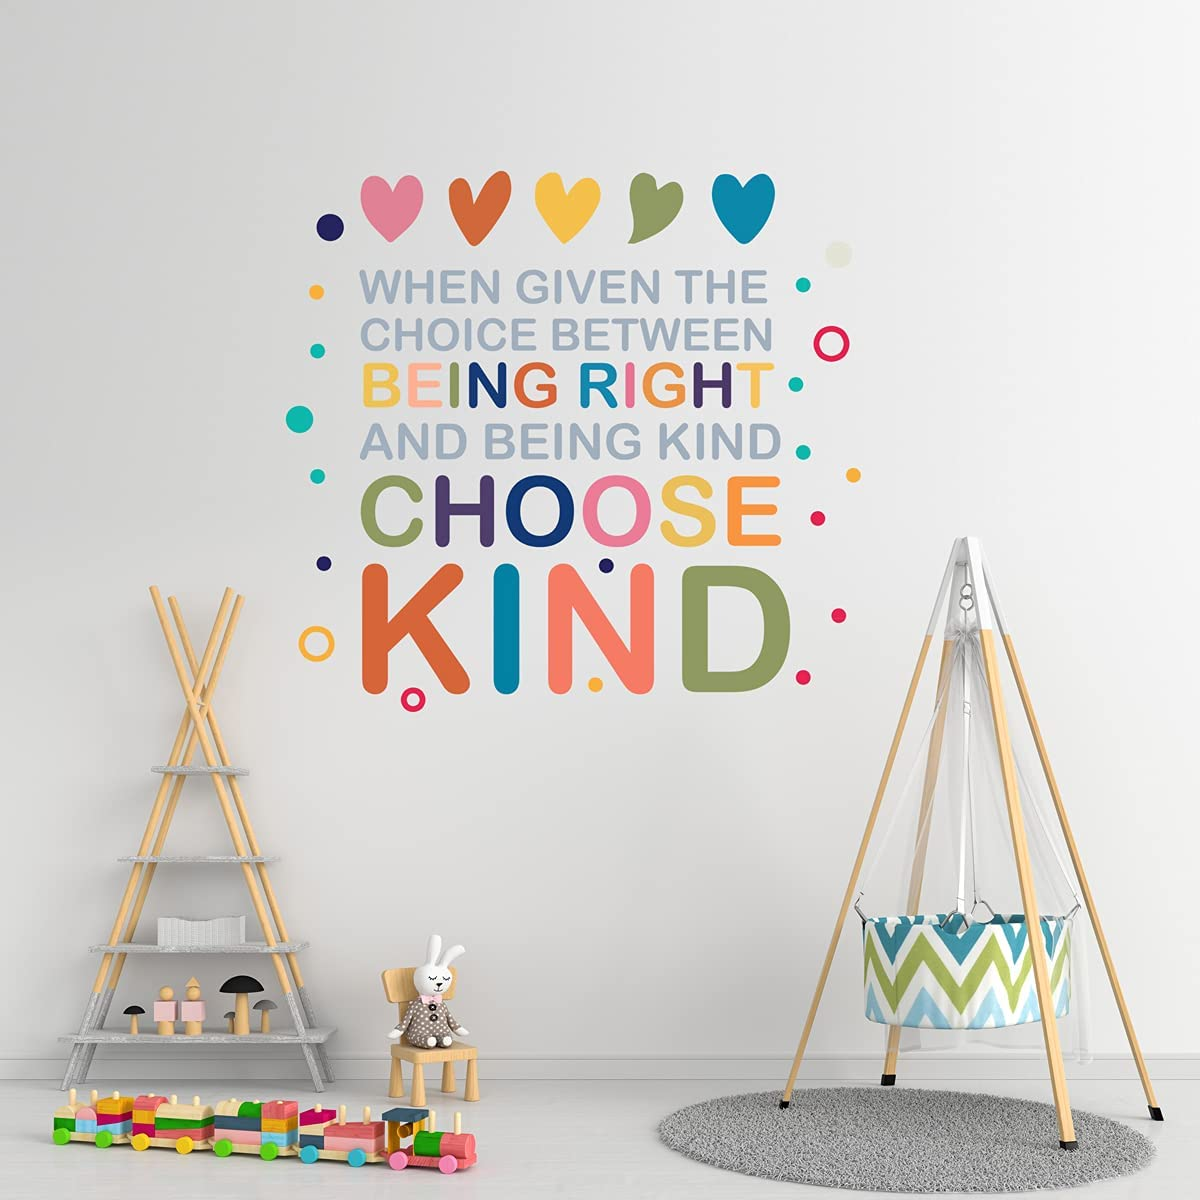 YOKIKI Colorful Motivational Saying Inspirational Quotes Wall Decal Art Vinyl Stickers for Living Room Kids Room Wall Decal Home Decor